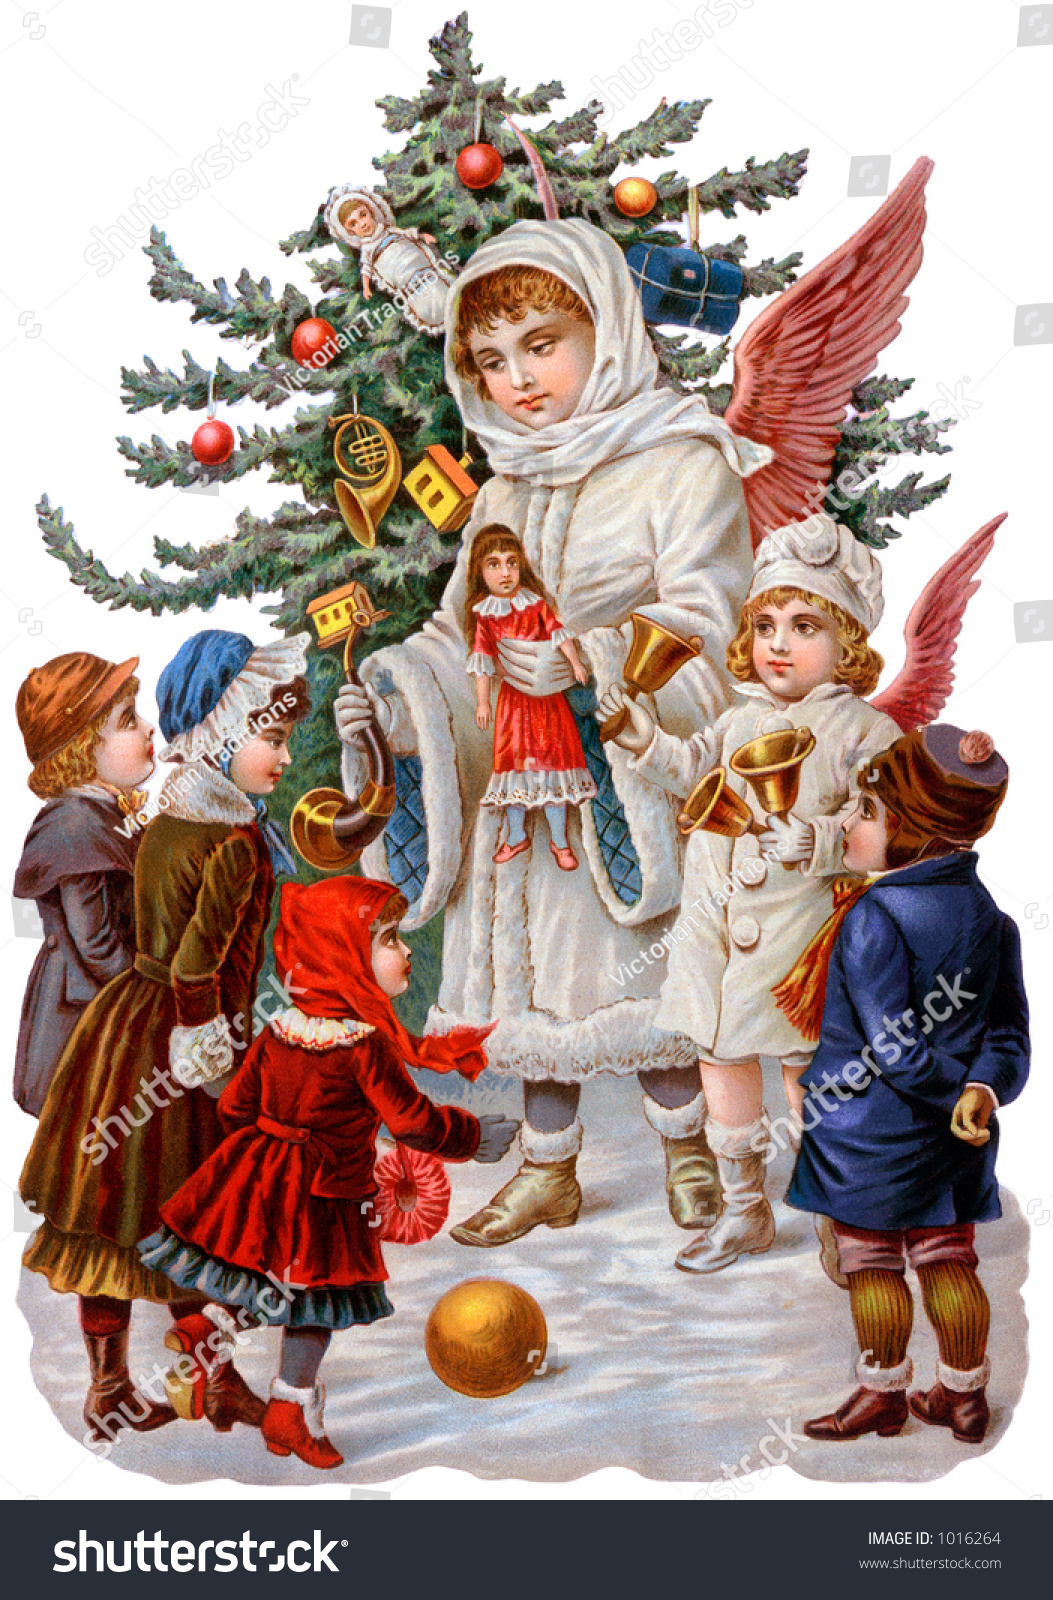 Victorian Illustration Christmas Angels Giving Gifts Stock Photo ...